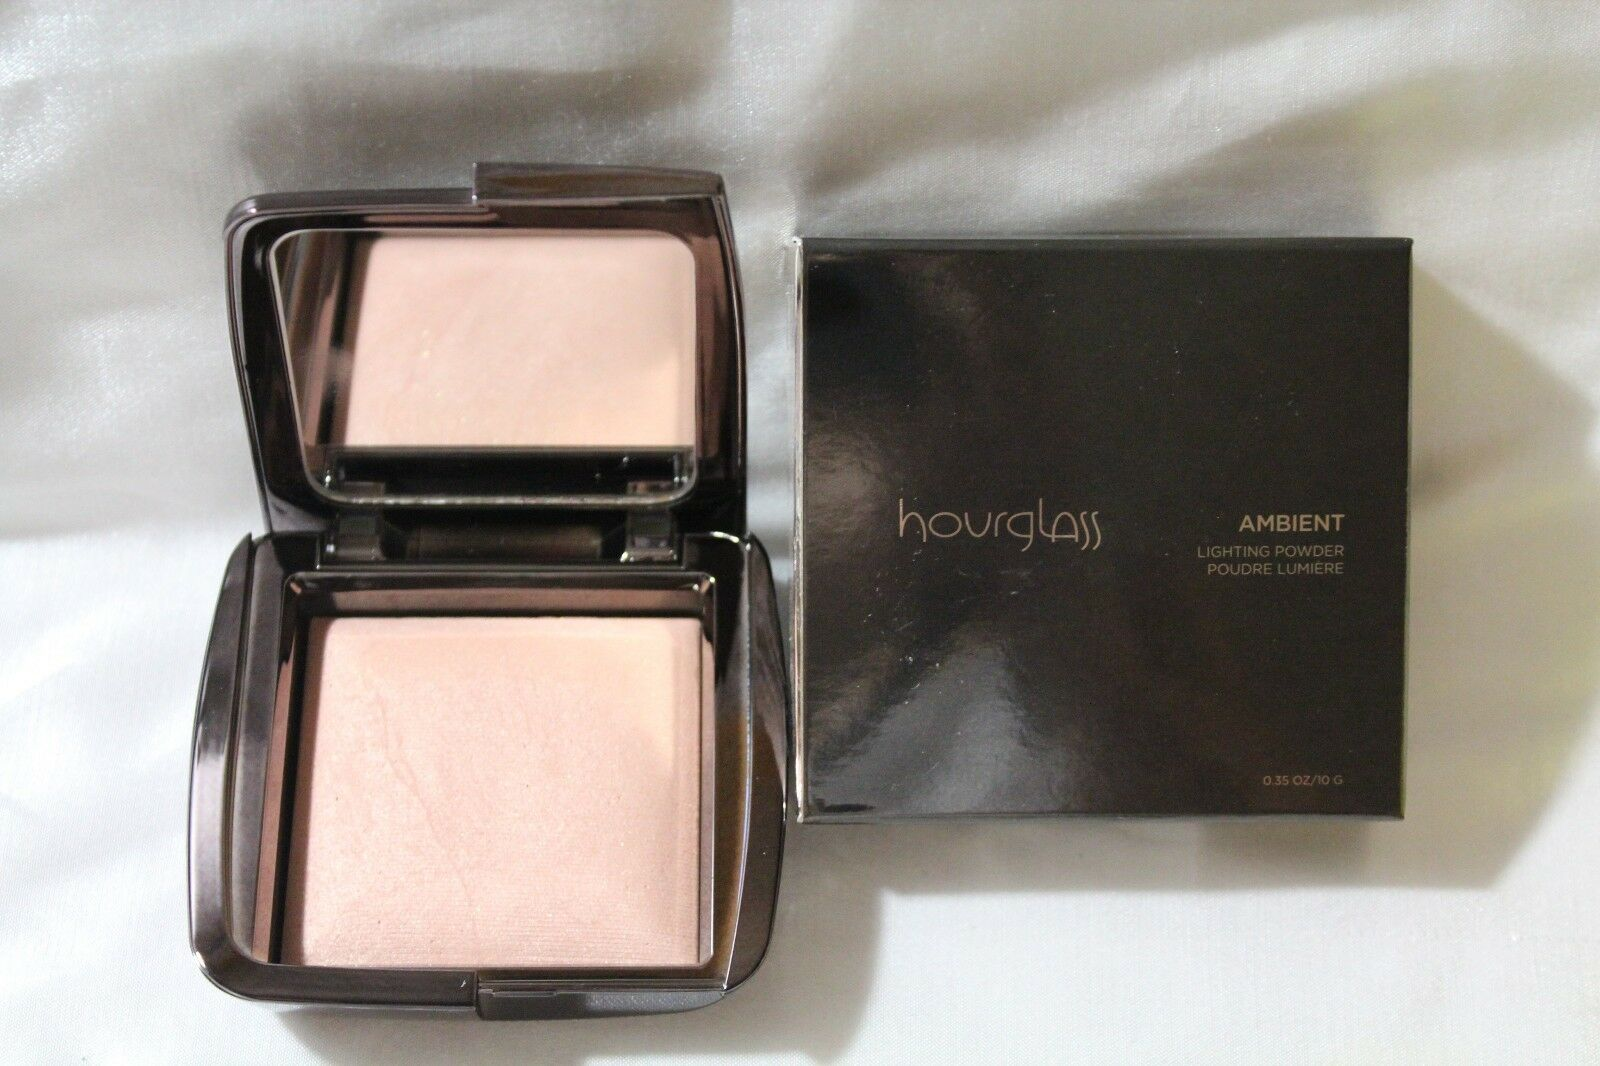 Picture 1 of 1 & Hourglass Ambient Lighting Powder Ethereal Light Authentic | eBay azcodes.com